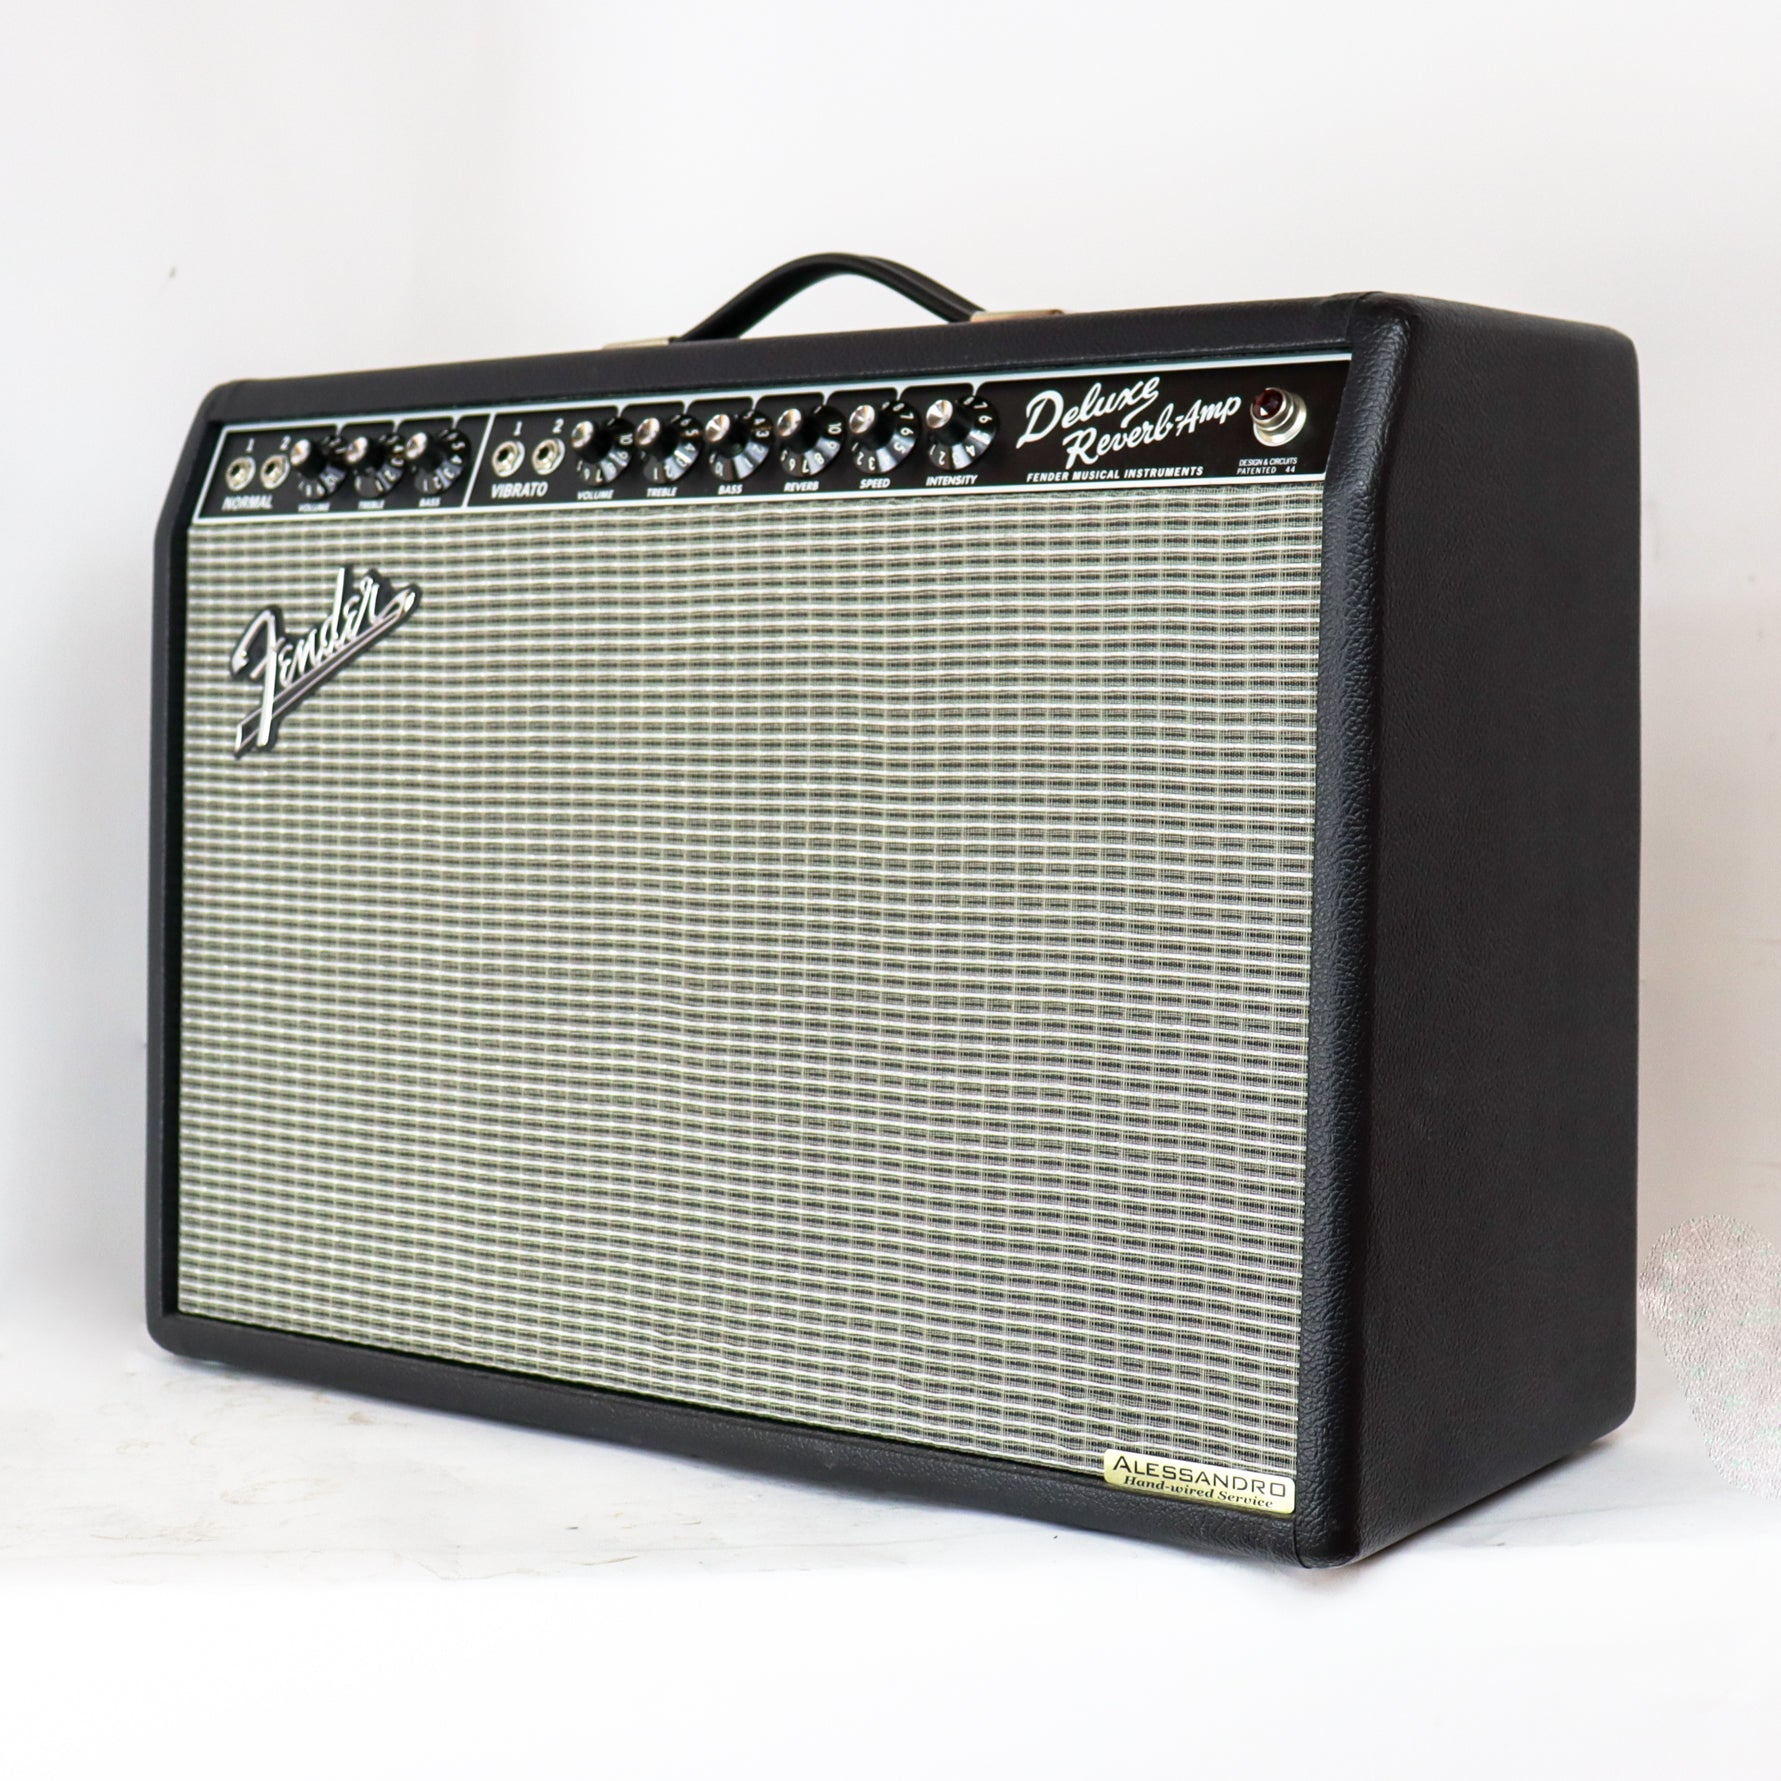 Fender 65 Deluxe Reverb Modified by George Alessandro